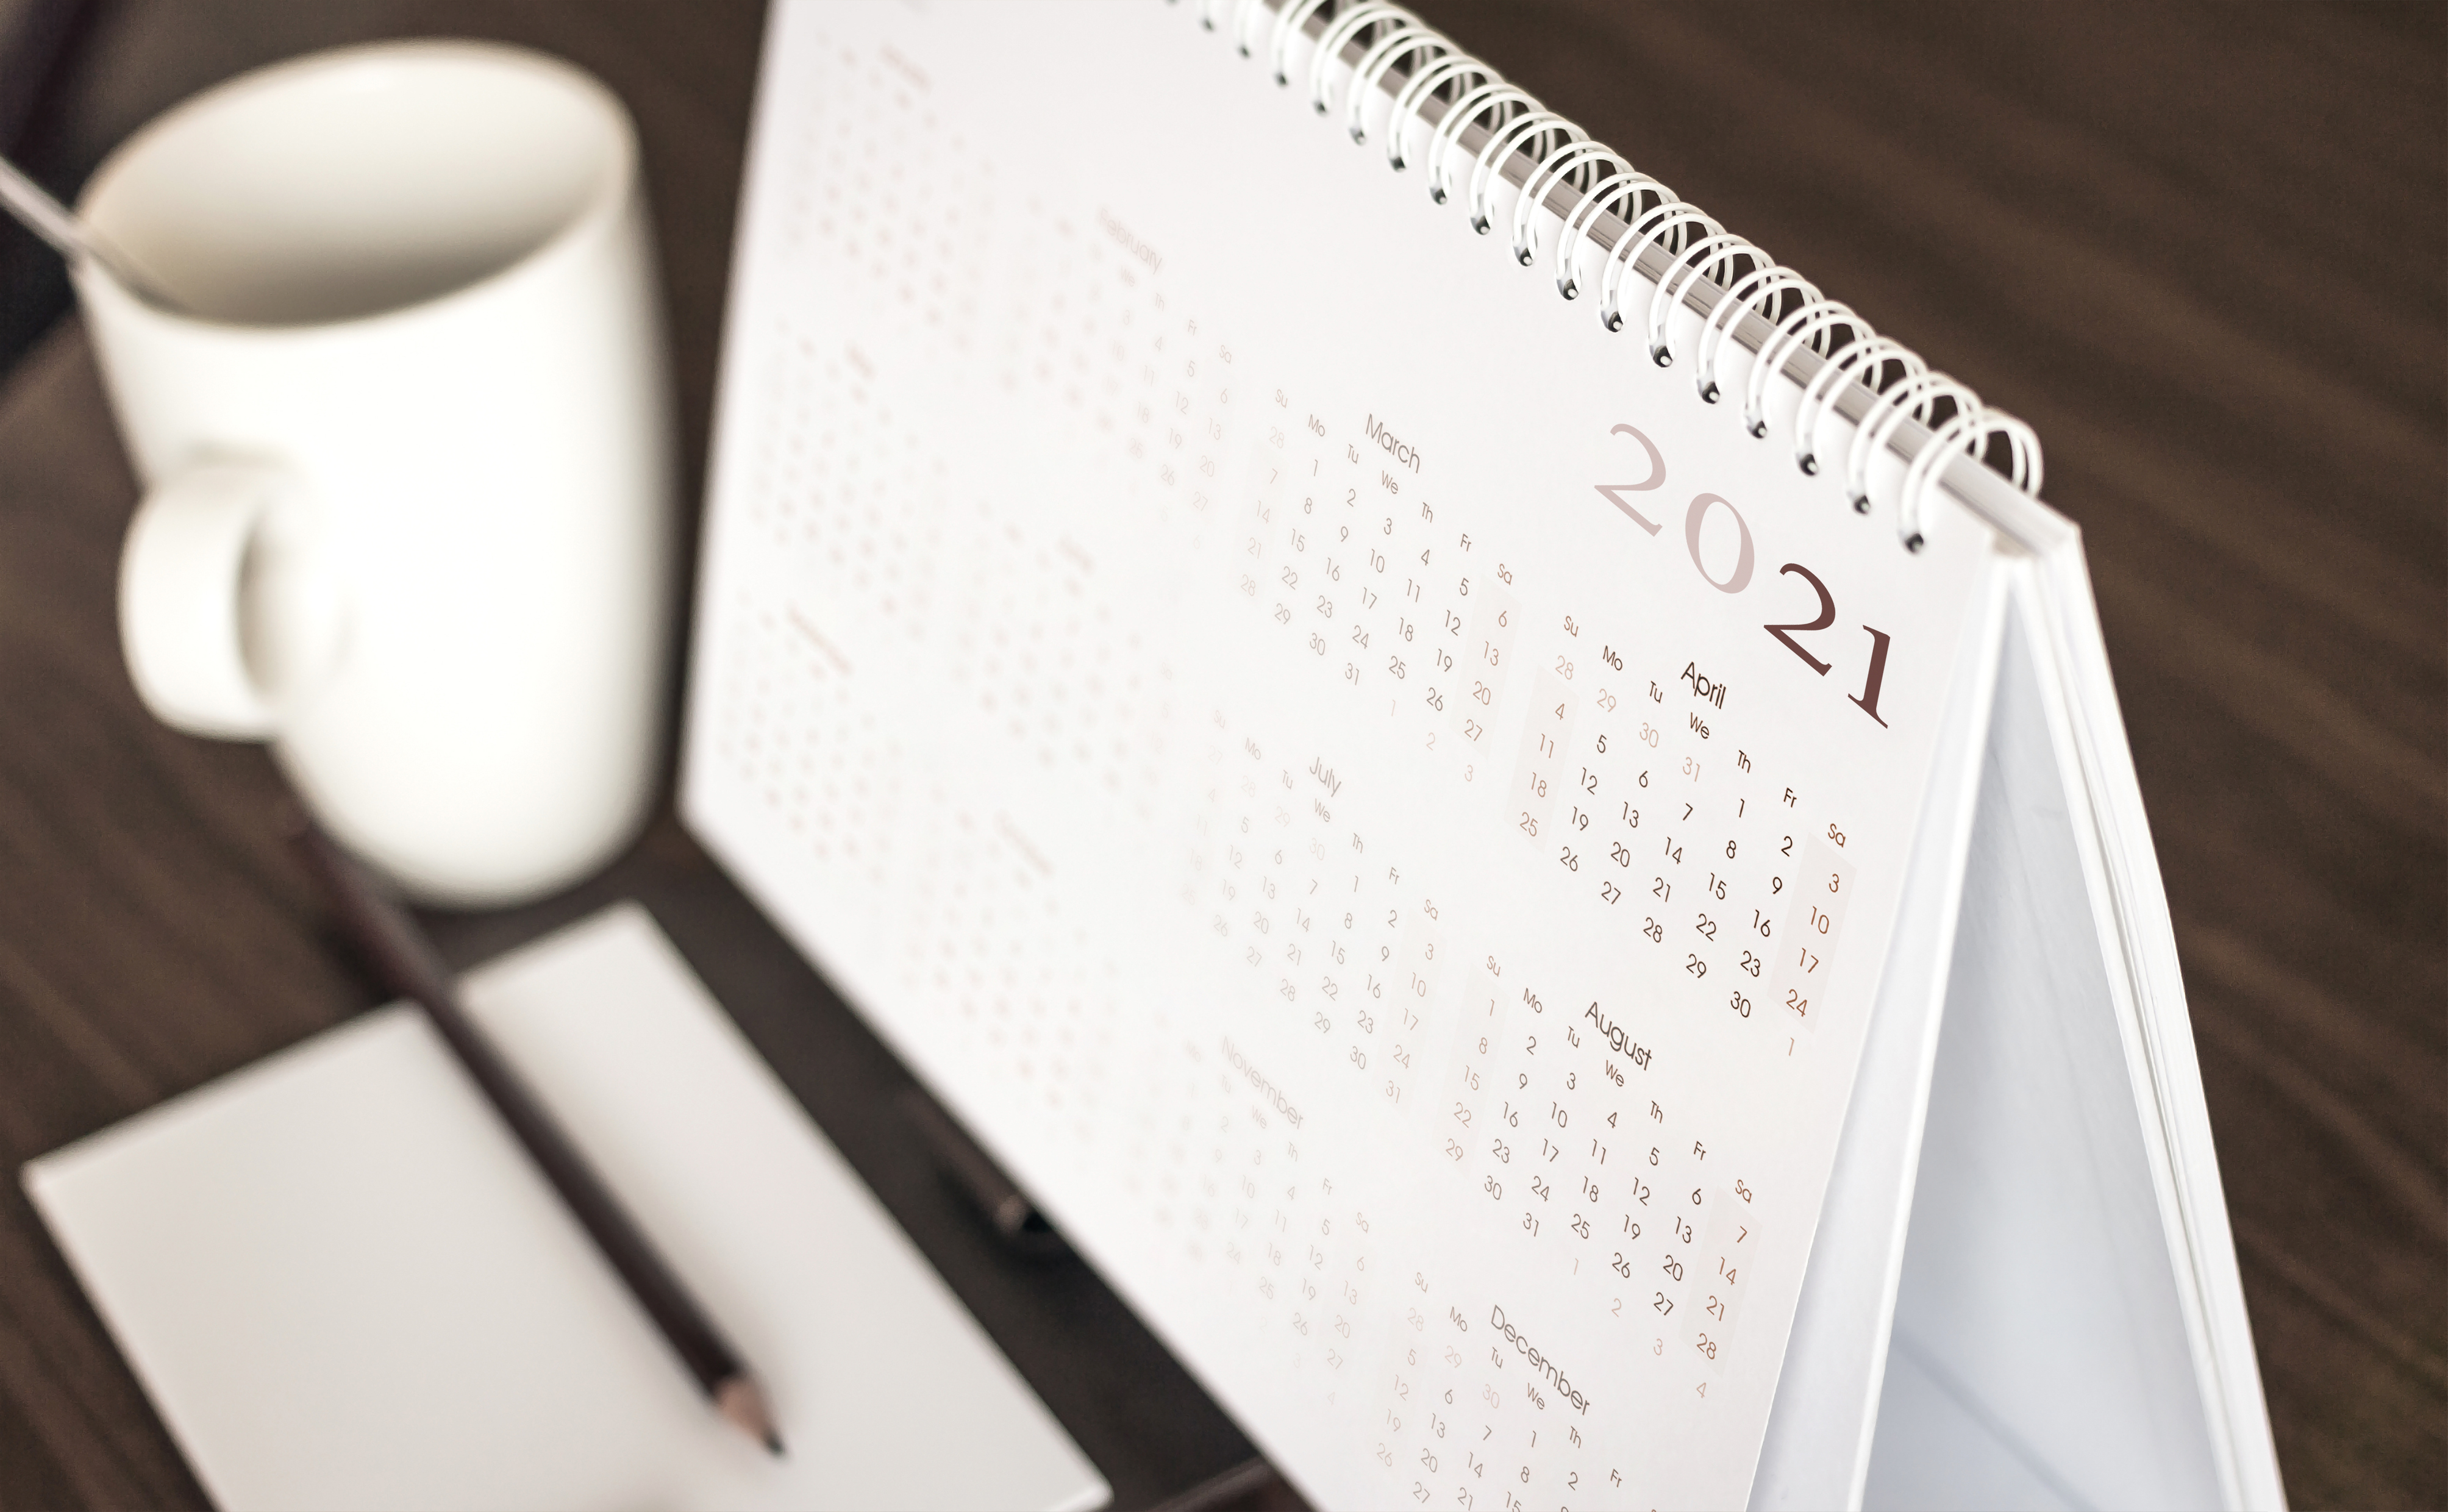 We've updated our events calendar for 2021